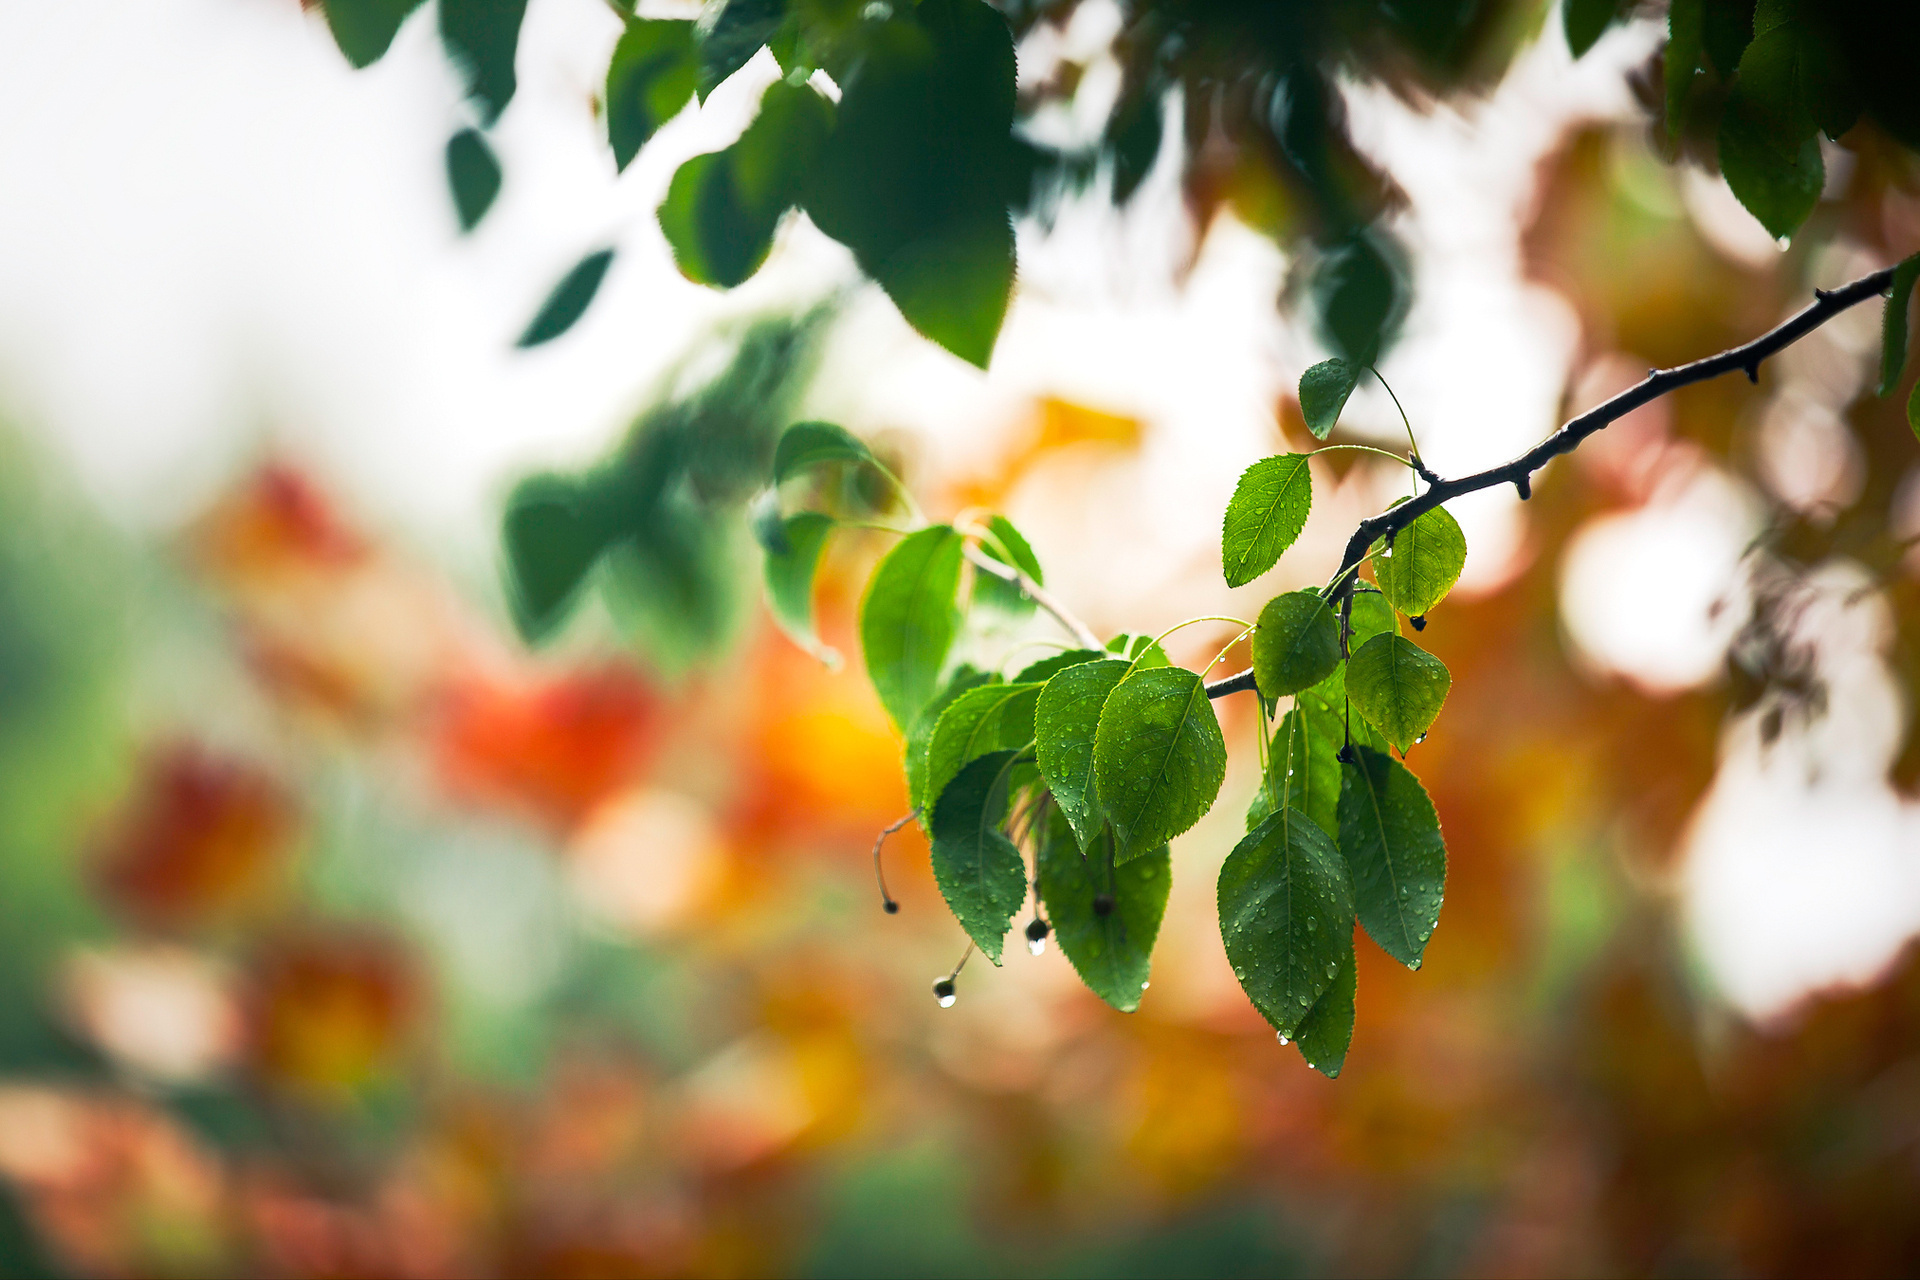 21795 download wallpaper Plants, Trees, Leaves, Drops screensavers and pictures for free